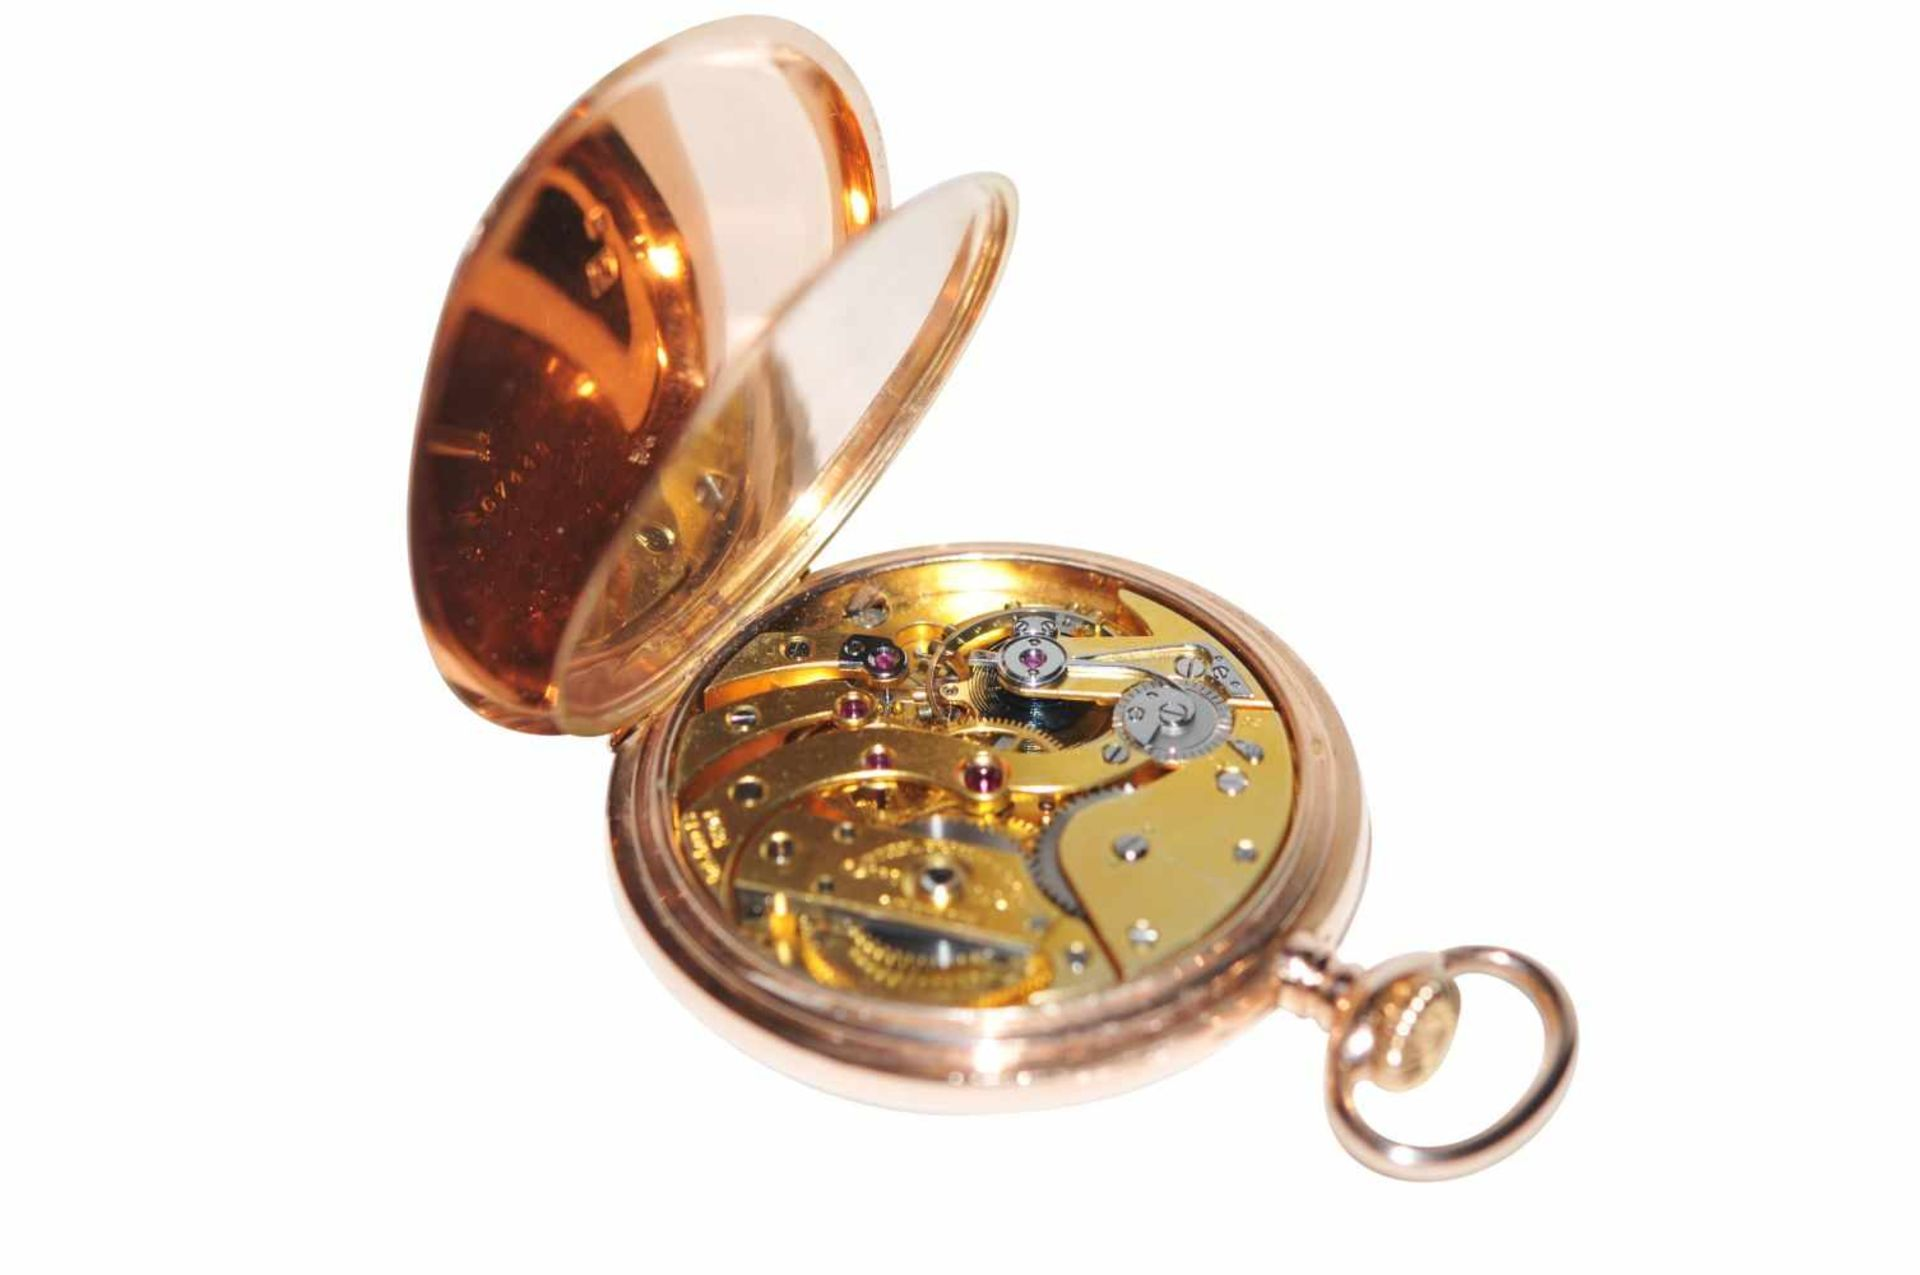 Los 83 - Patek Philippe LepineLepine pocket watch in 14K gold with 2nd cover signed Patek Philippe with